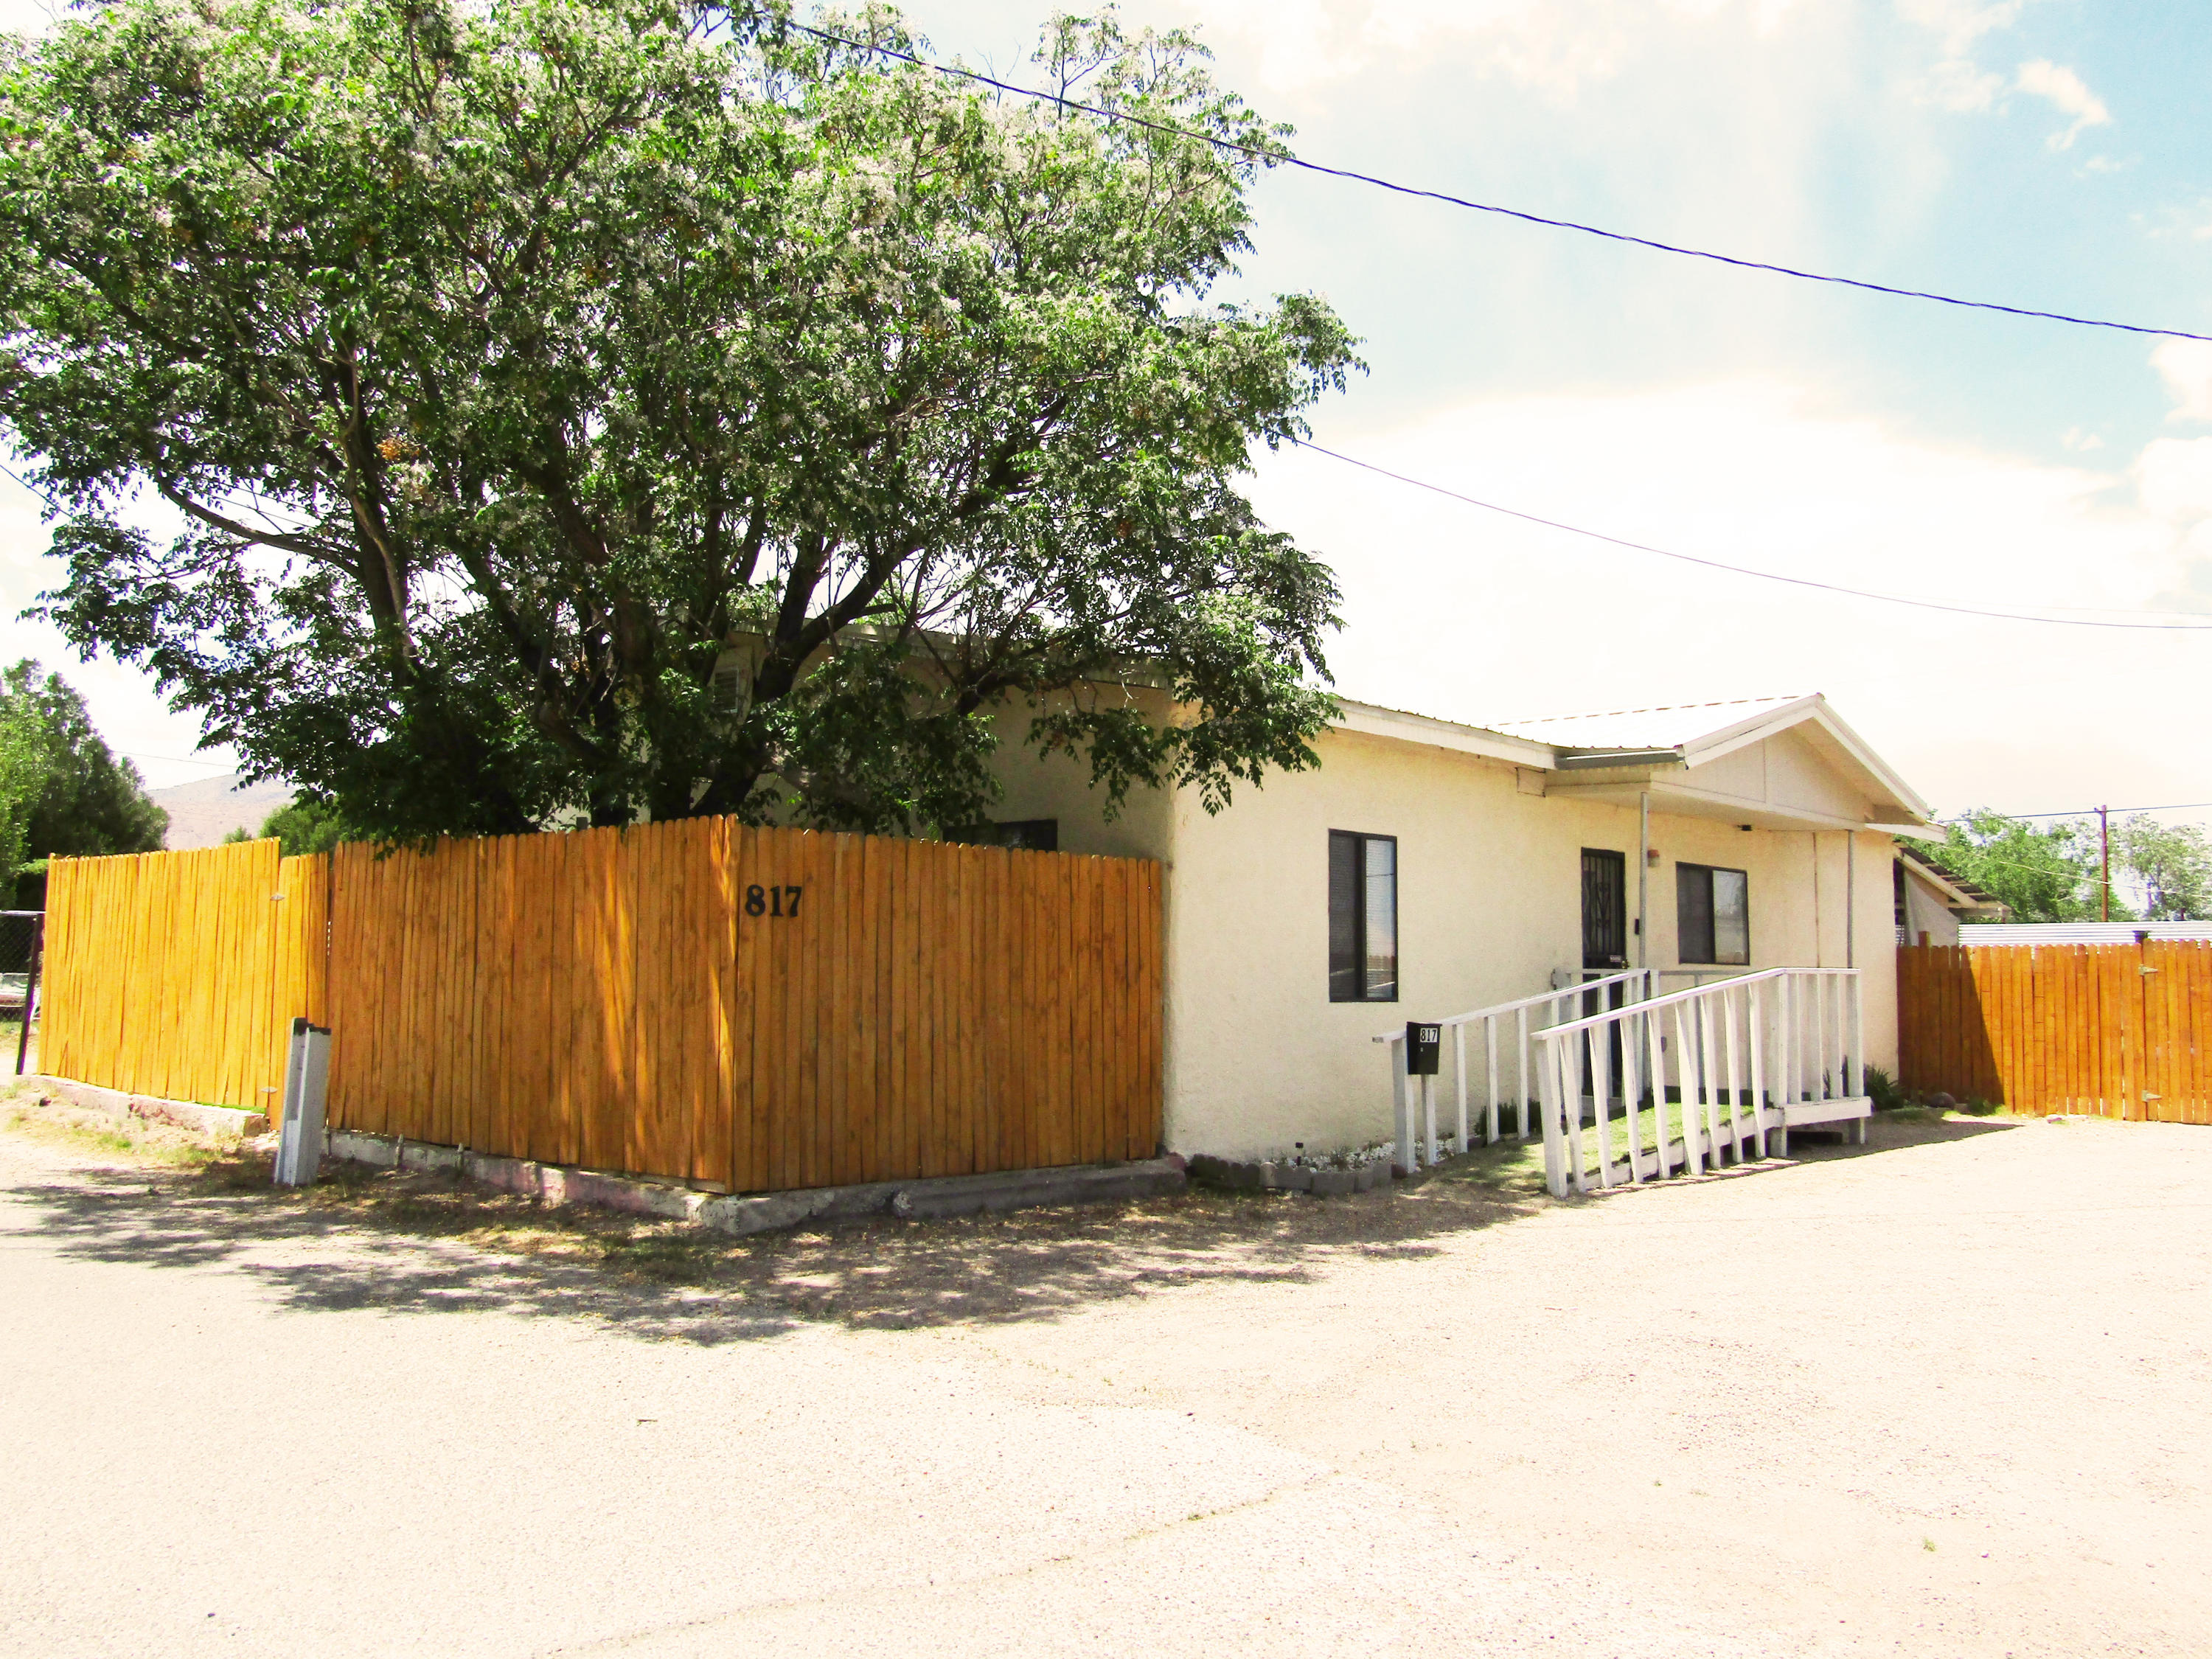 Come see this absolutely adorable home that sits minutes from New Mexico Tech! Unique floorplan with up to 4 bedrooms possible or make the extra rooms into a library, office, sitting room...the possibilities are endless! Quirky, artistic details throughout. You have to see this one before it's gone!